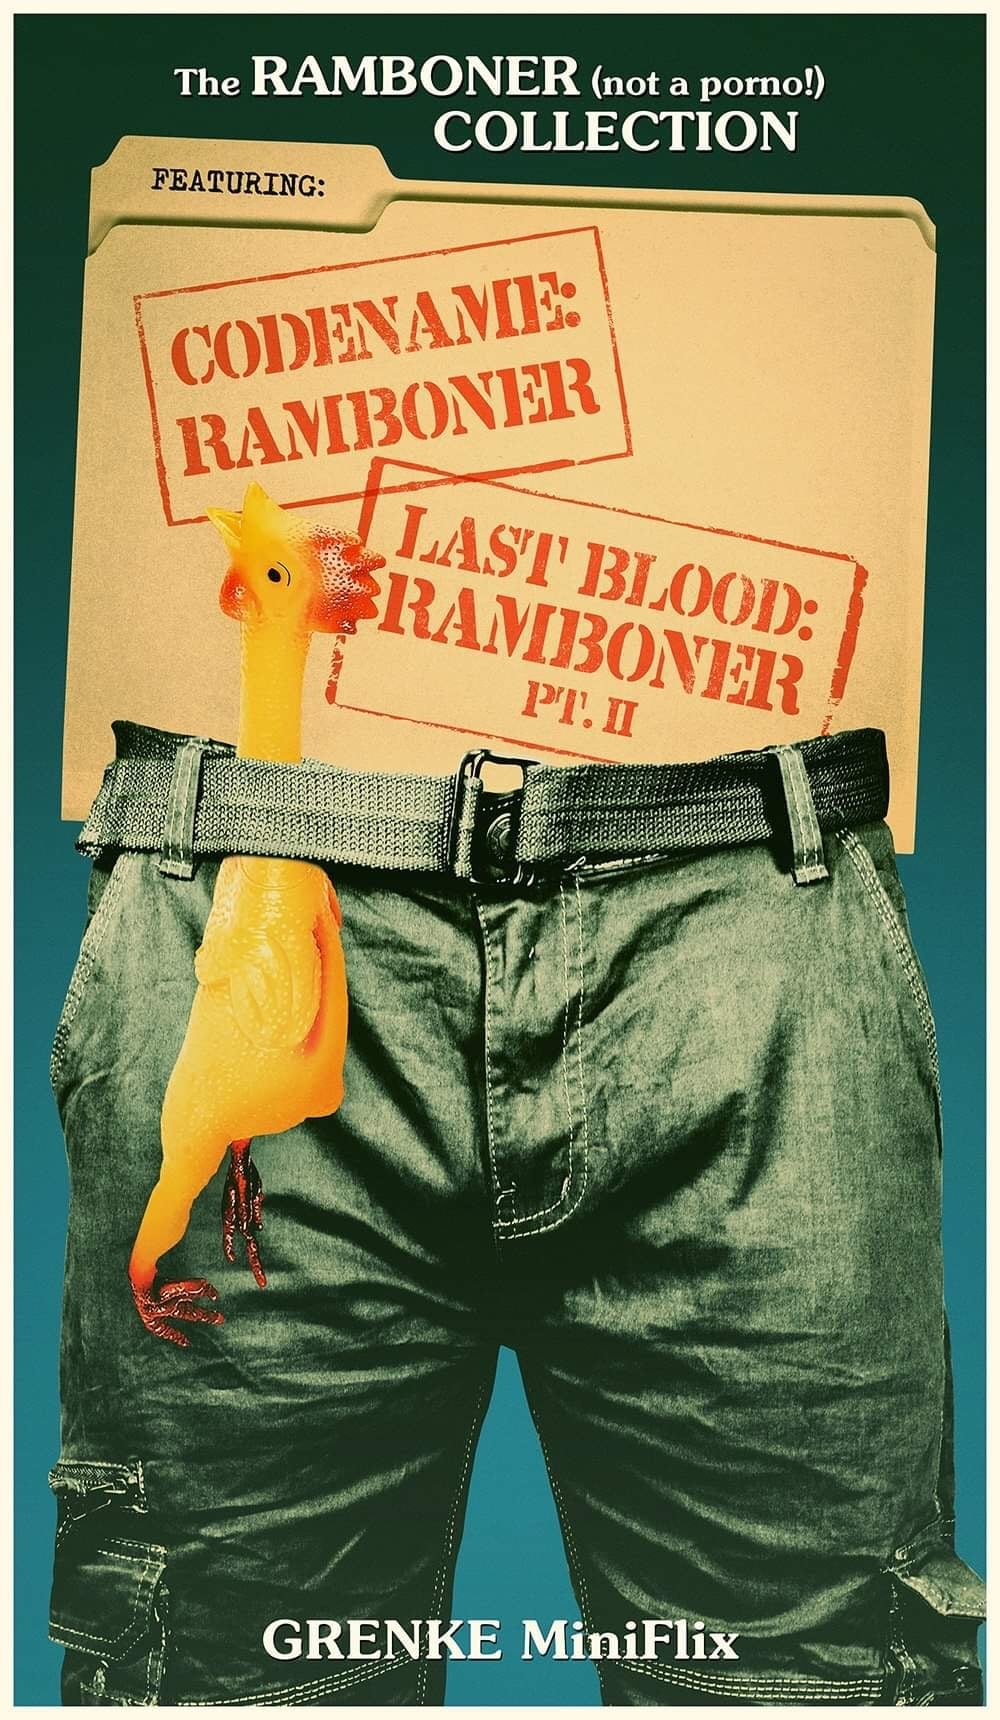 Last Blood: Ramboner PT. II (1970)